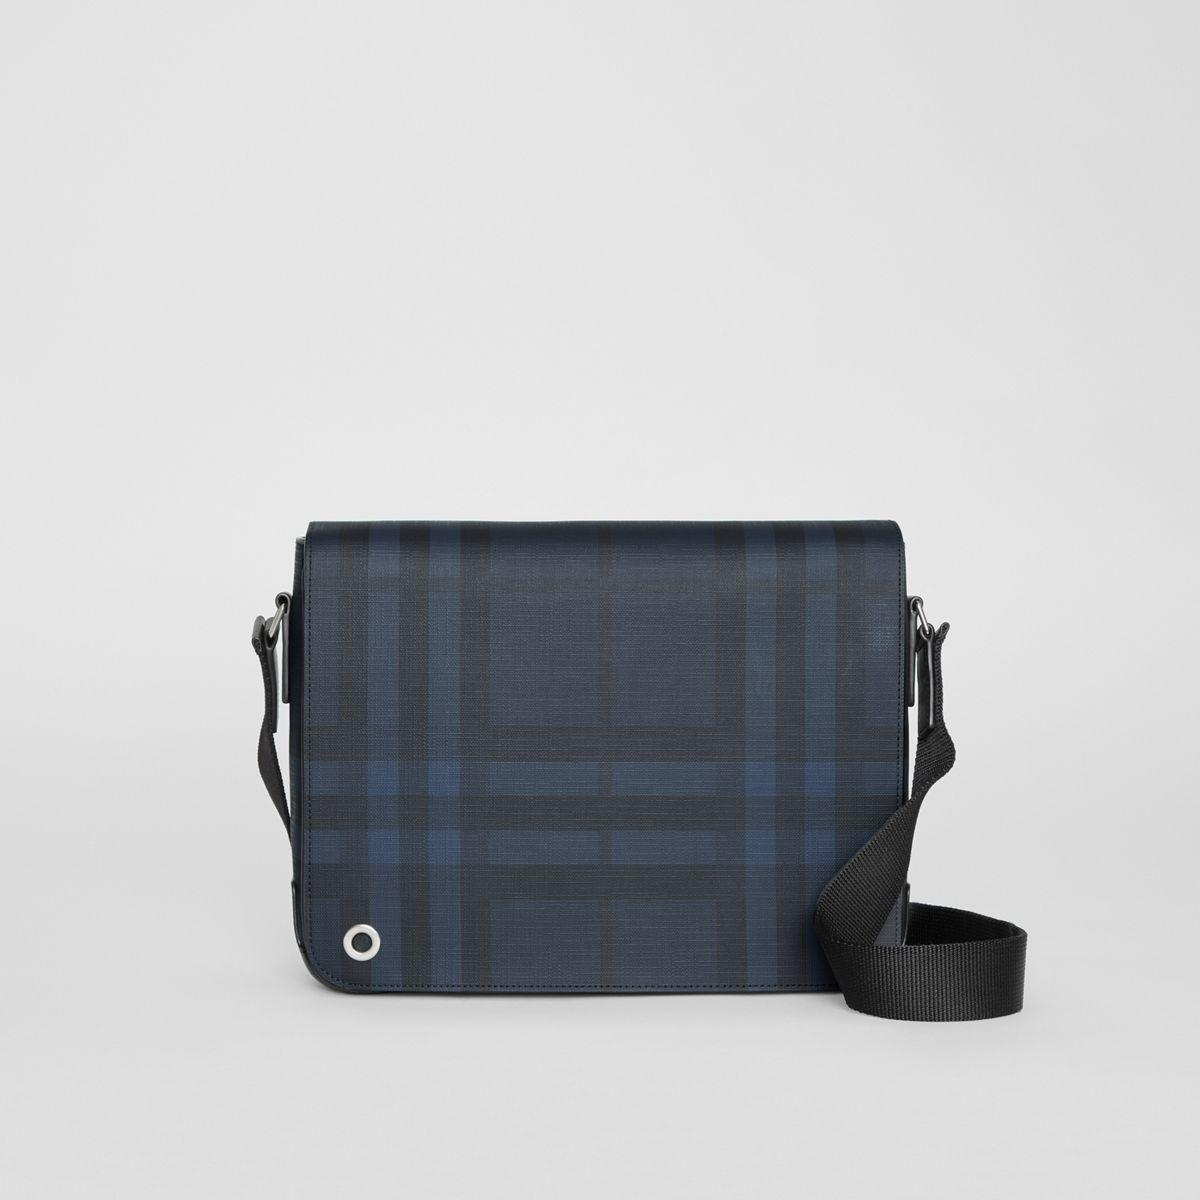 ffb0beb1c263 Lyst - Burberry Small London Check Satchel for Men